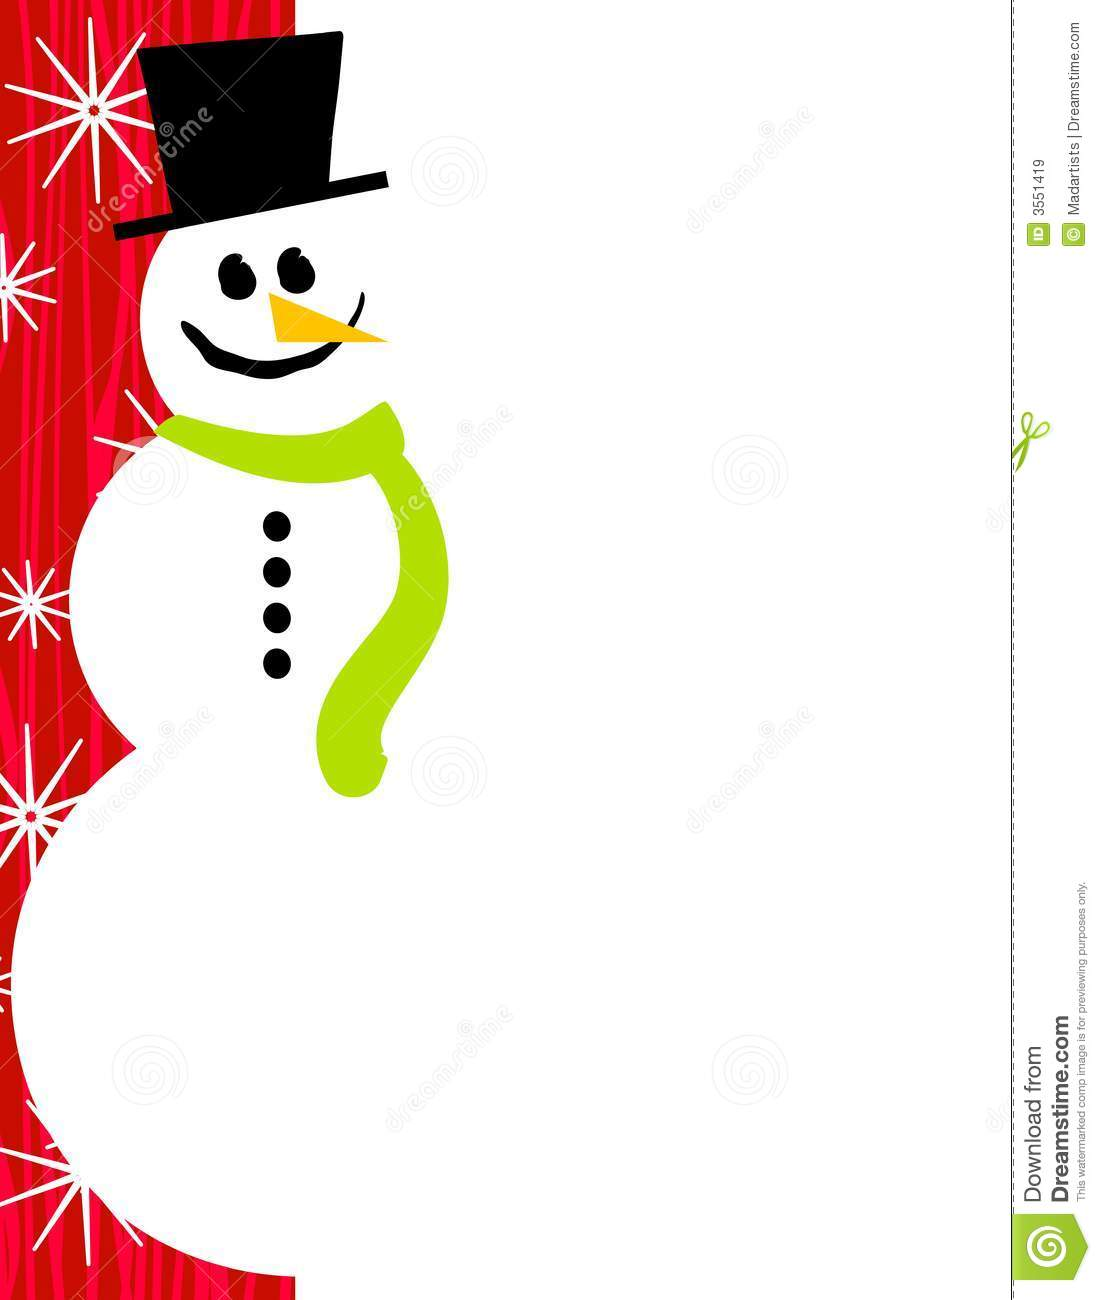 Snowman Page Border Red Royalty Free Stock Images Image: 3551419 ...